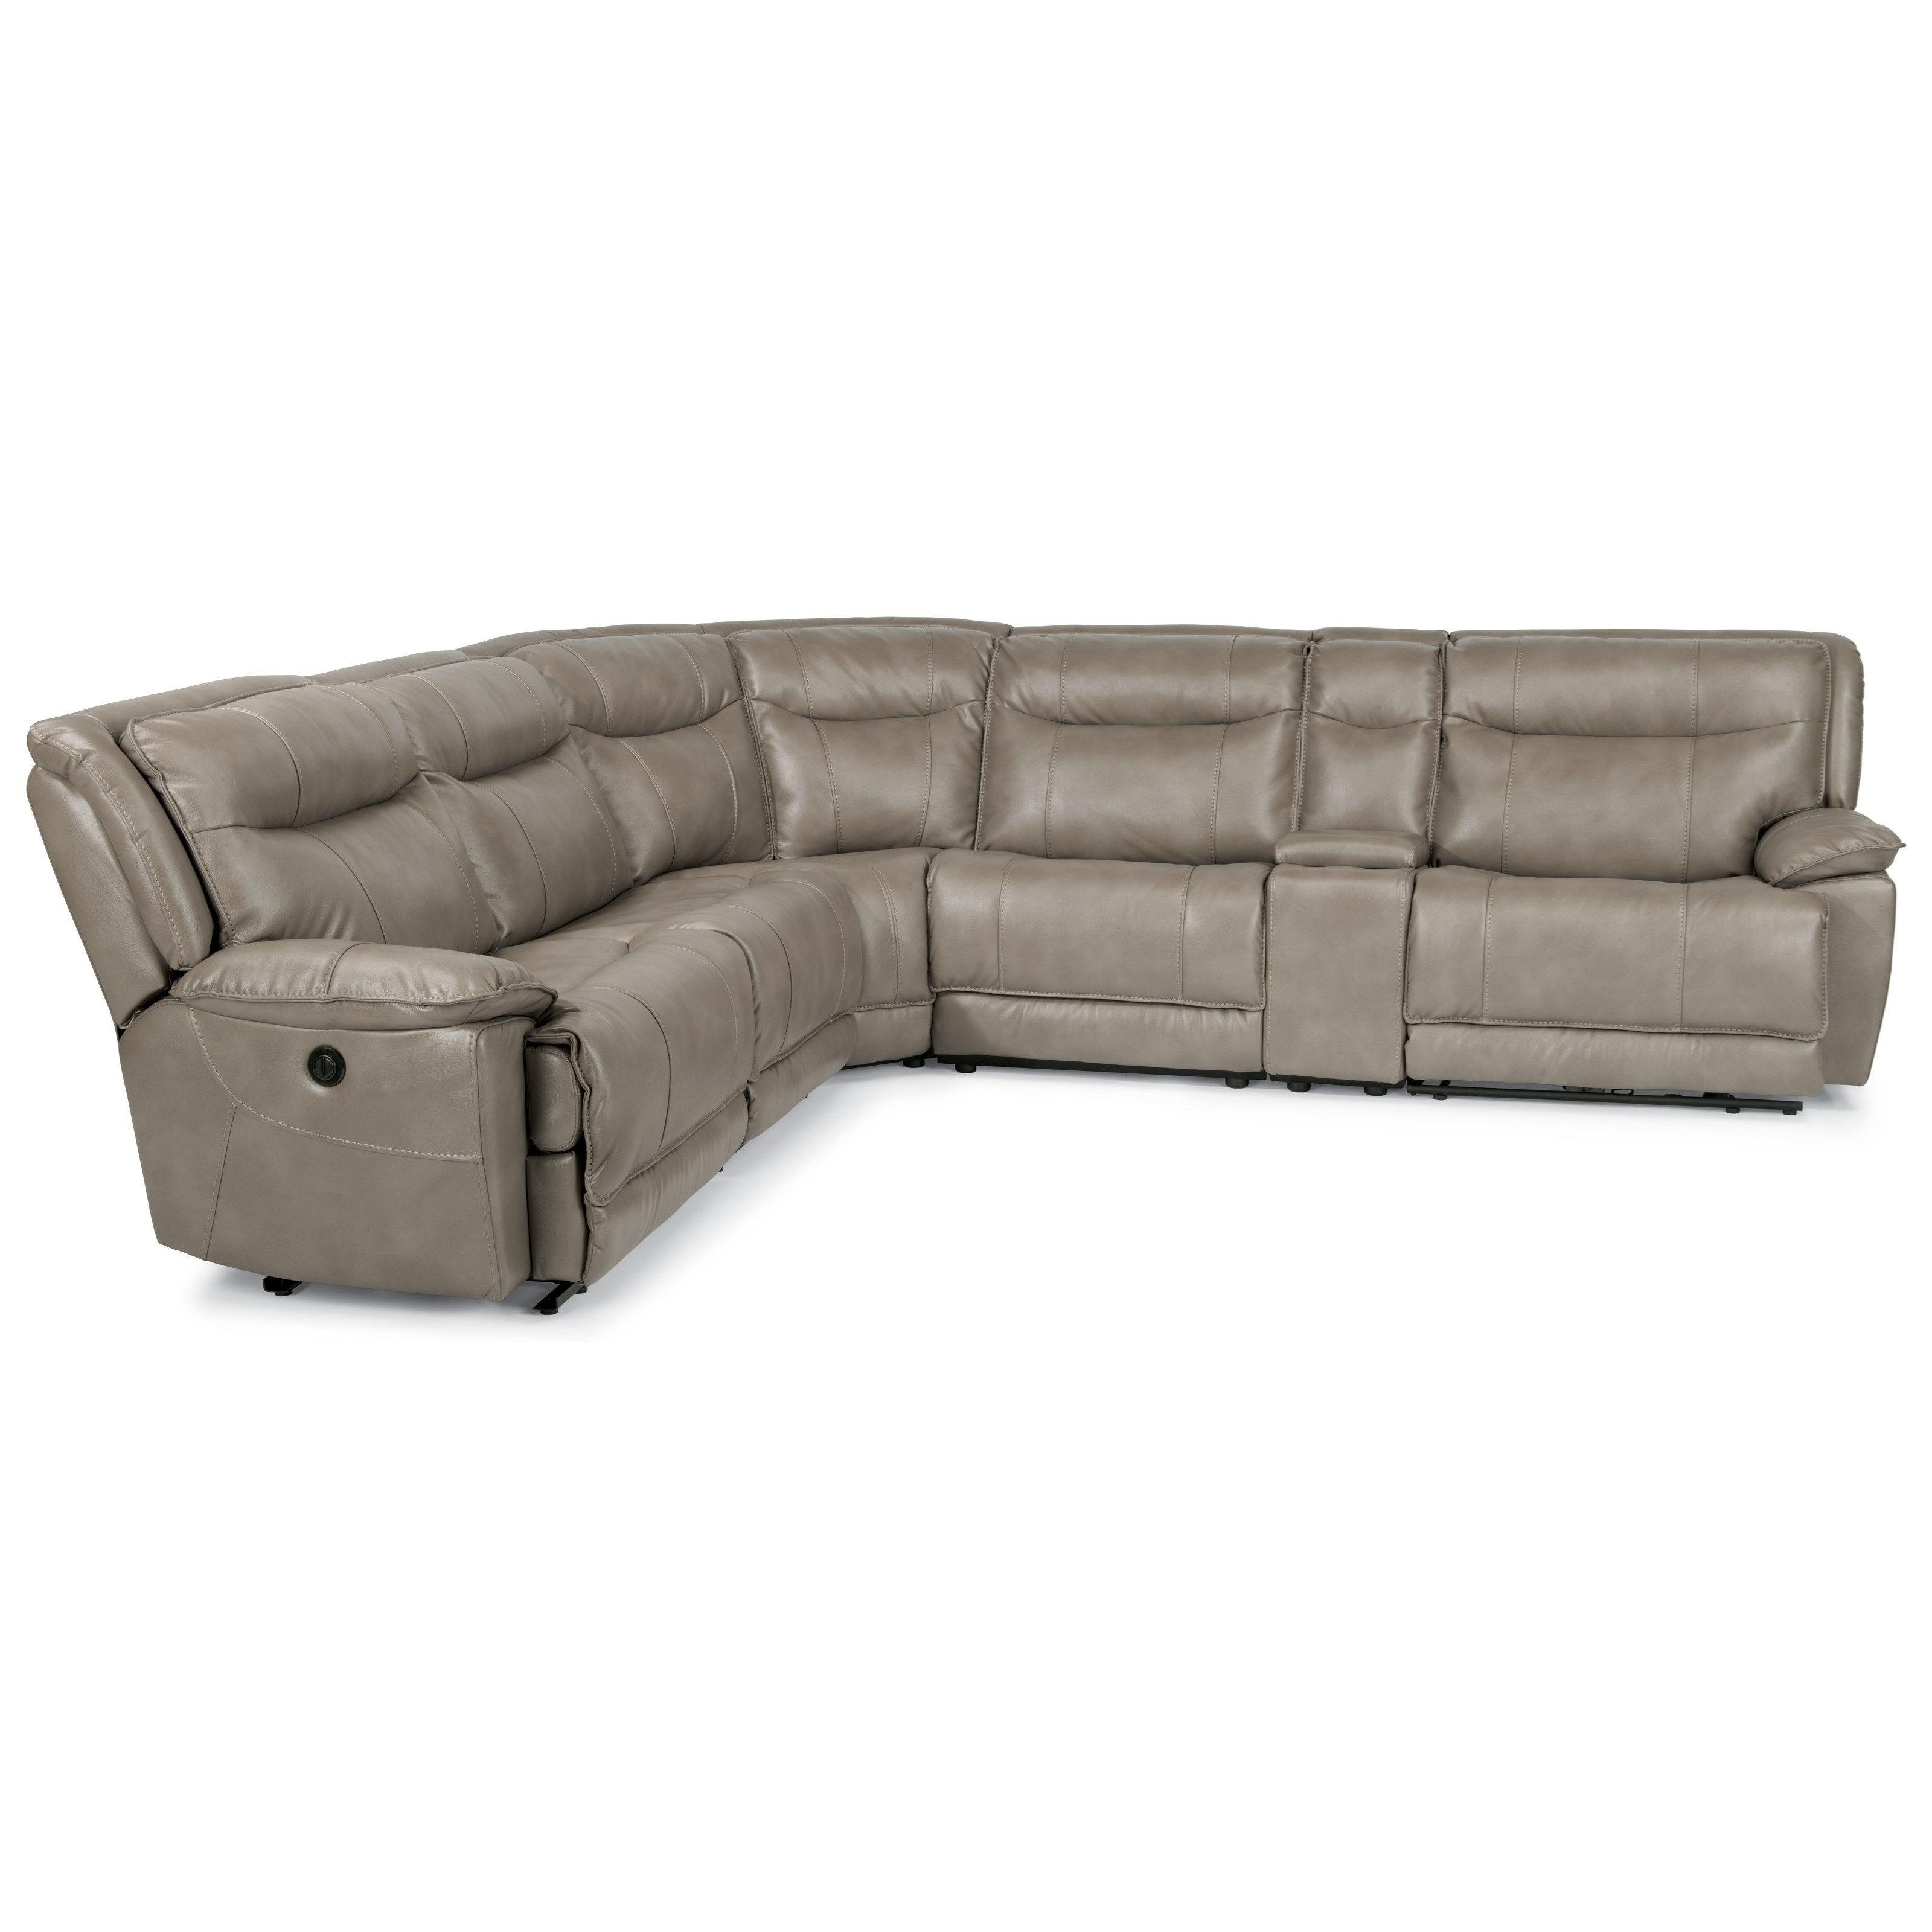 Flexsteel Latitudes-Bliss Six Piece Reclining Sectional Sofa with Cupholders and USB Charging Ports  sc 1 st  Wayside Furniture : sectional with cup holders - Sectionals, Sofas & Couches